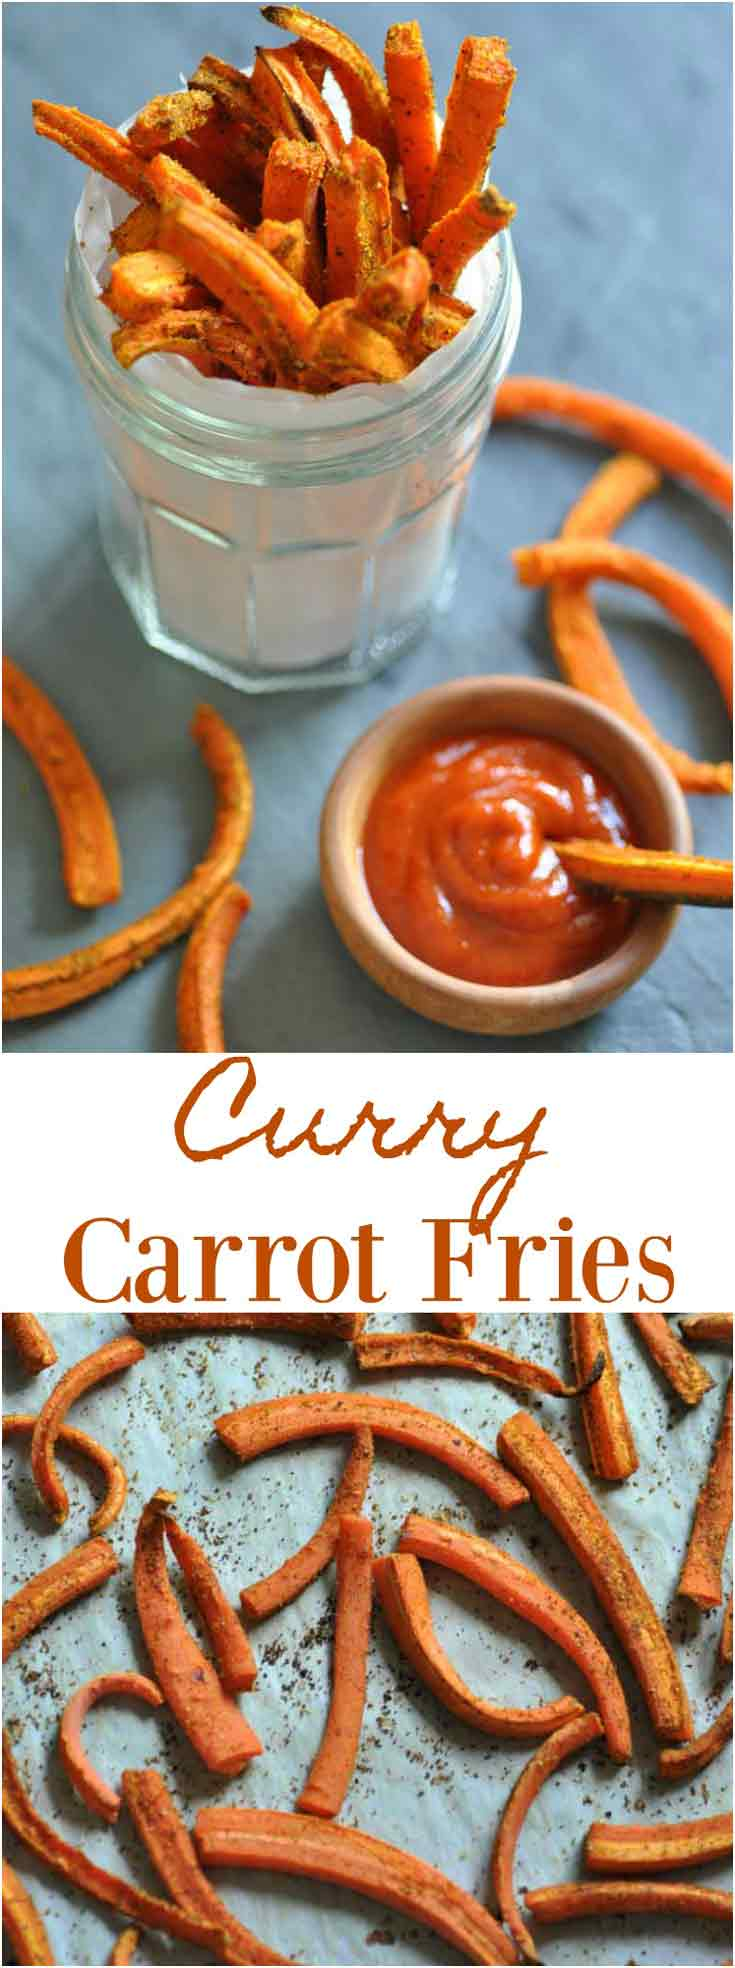 Delicious and healthy oven baked Curry Carrot Fries!